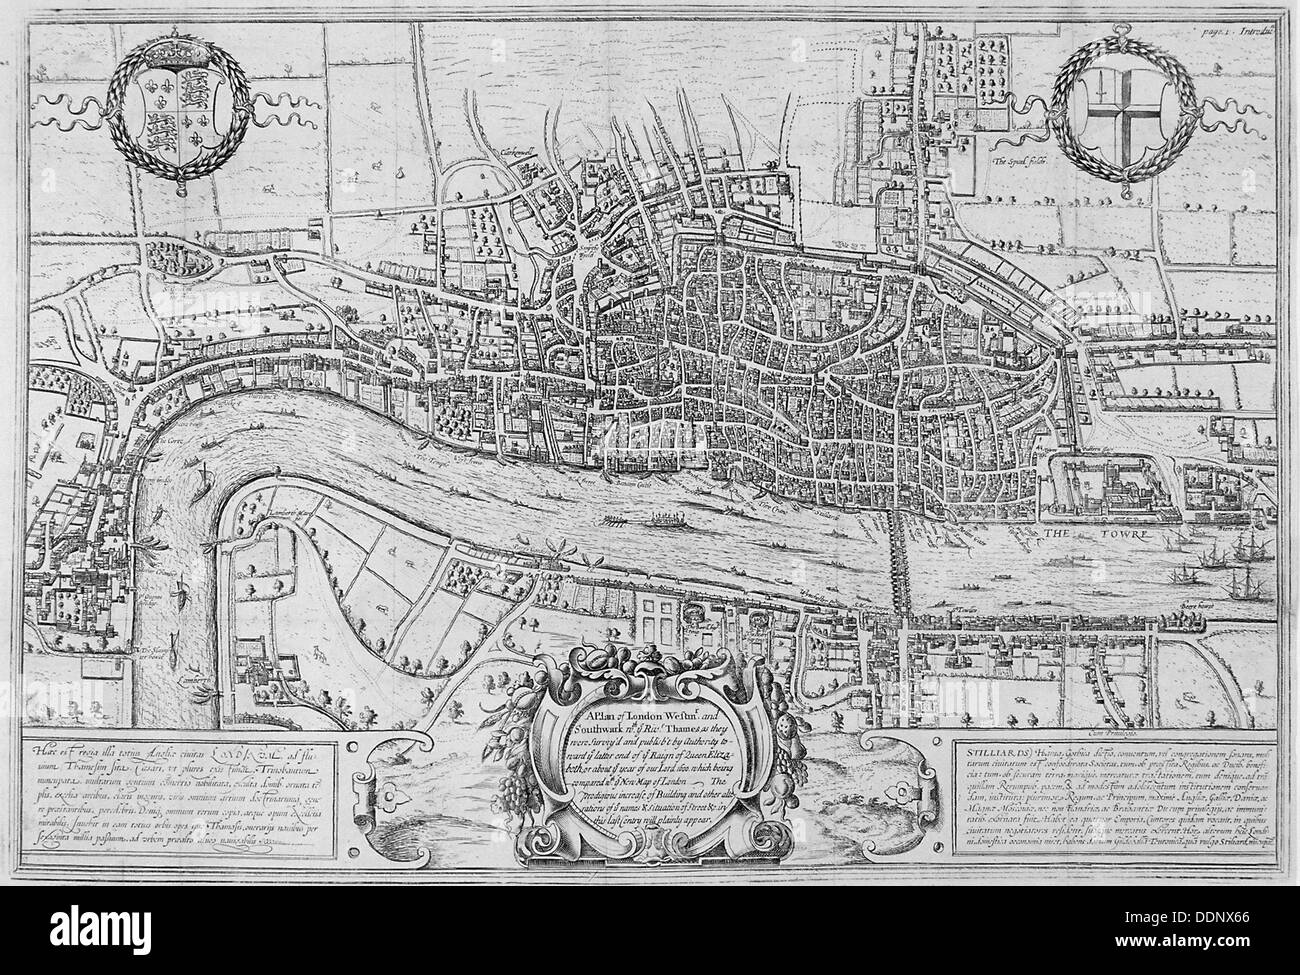 Map of the City of London and City of Westminster in c1600, 1708. Artist: Anon - Stock Image